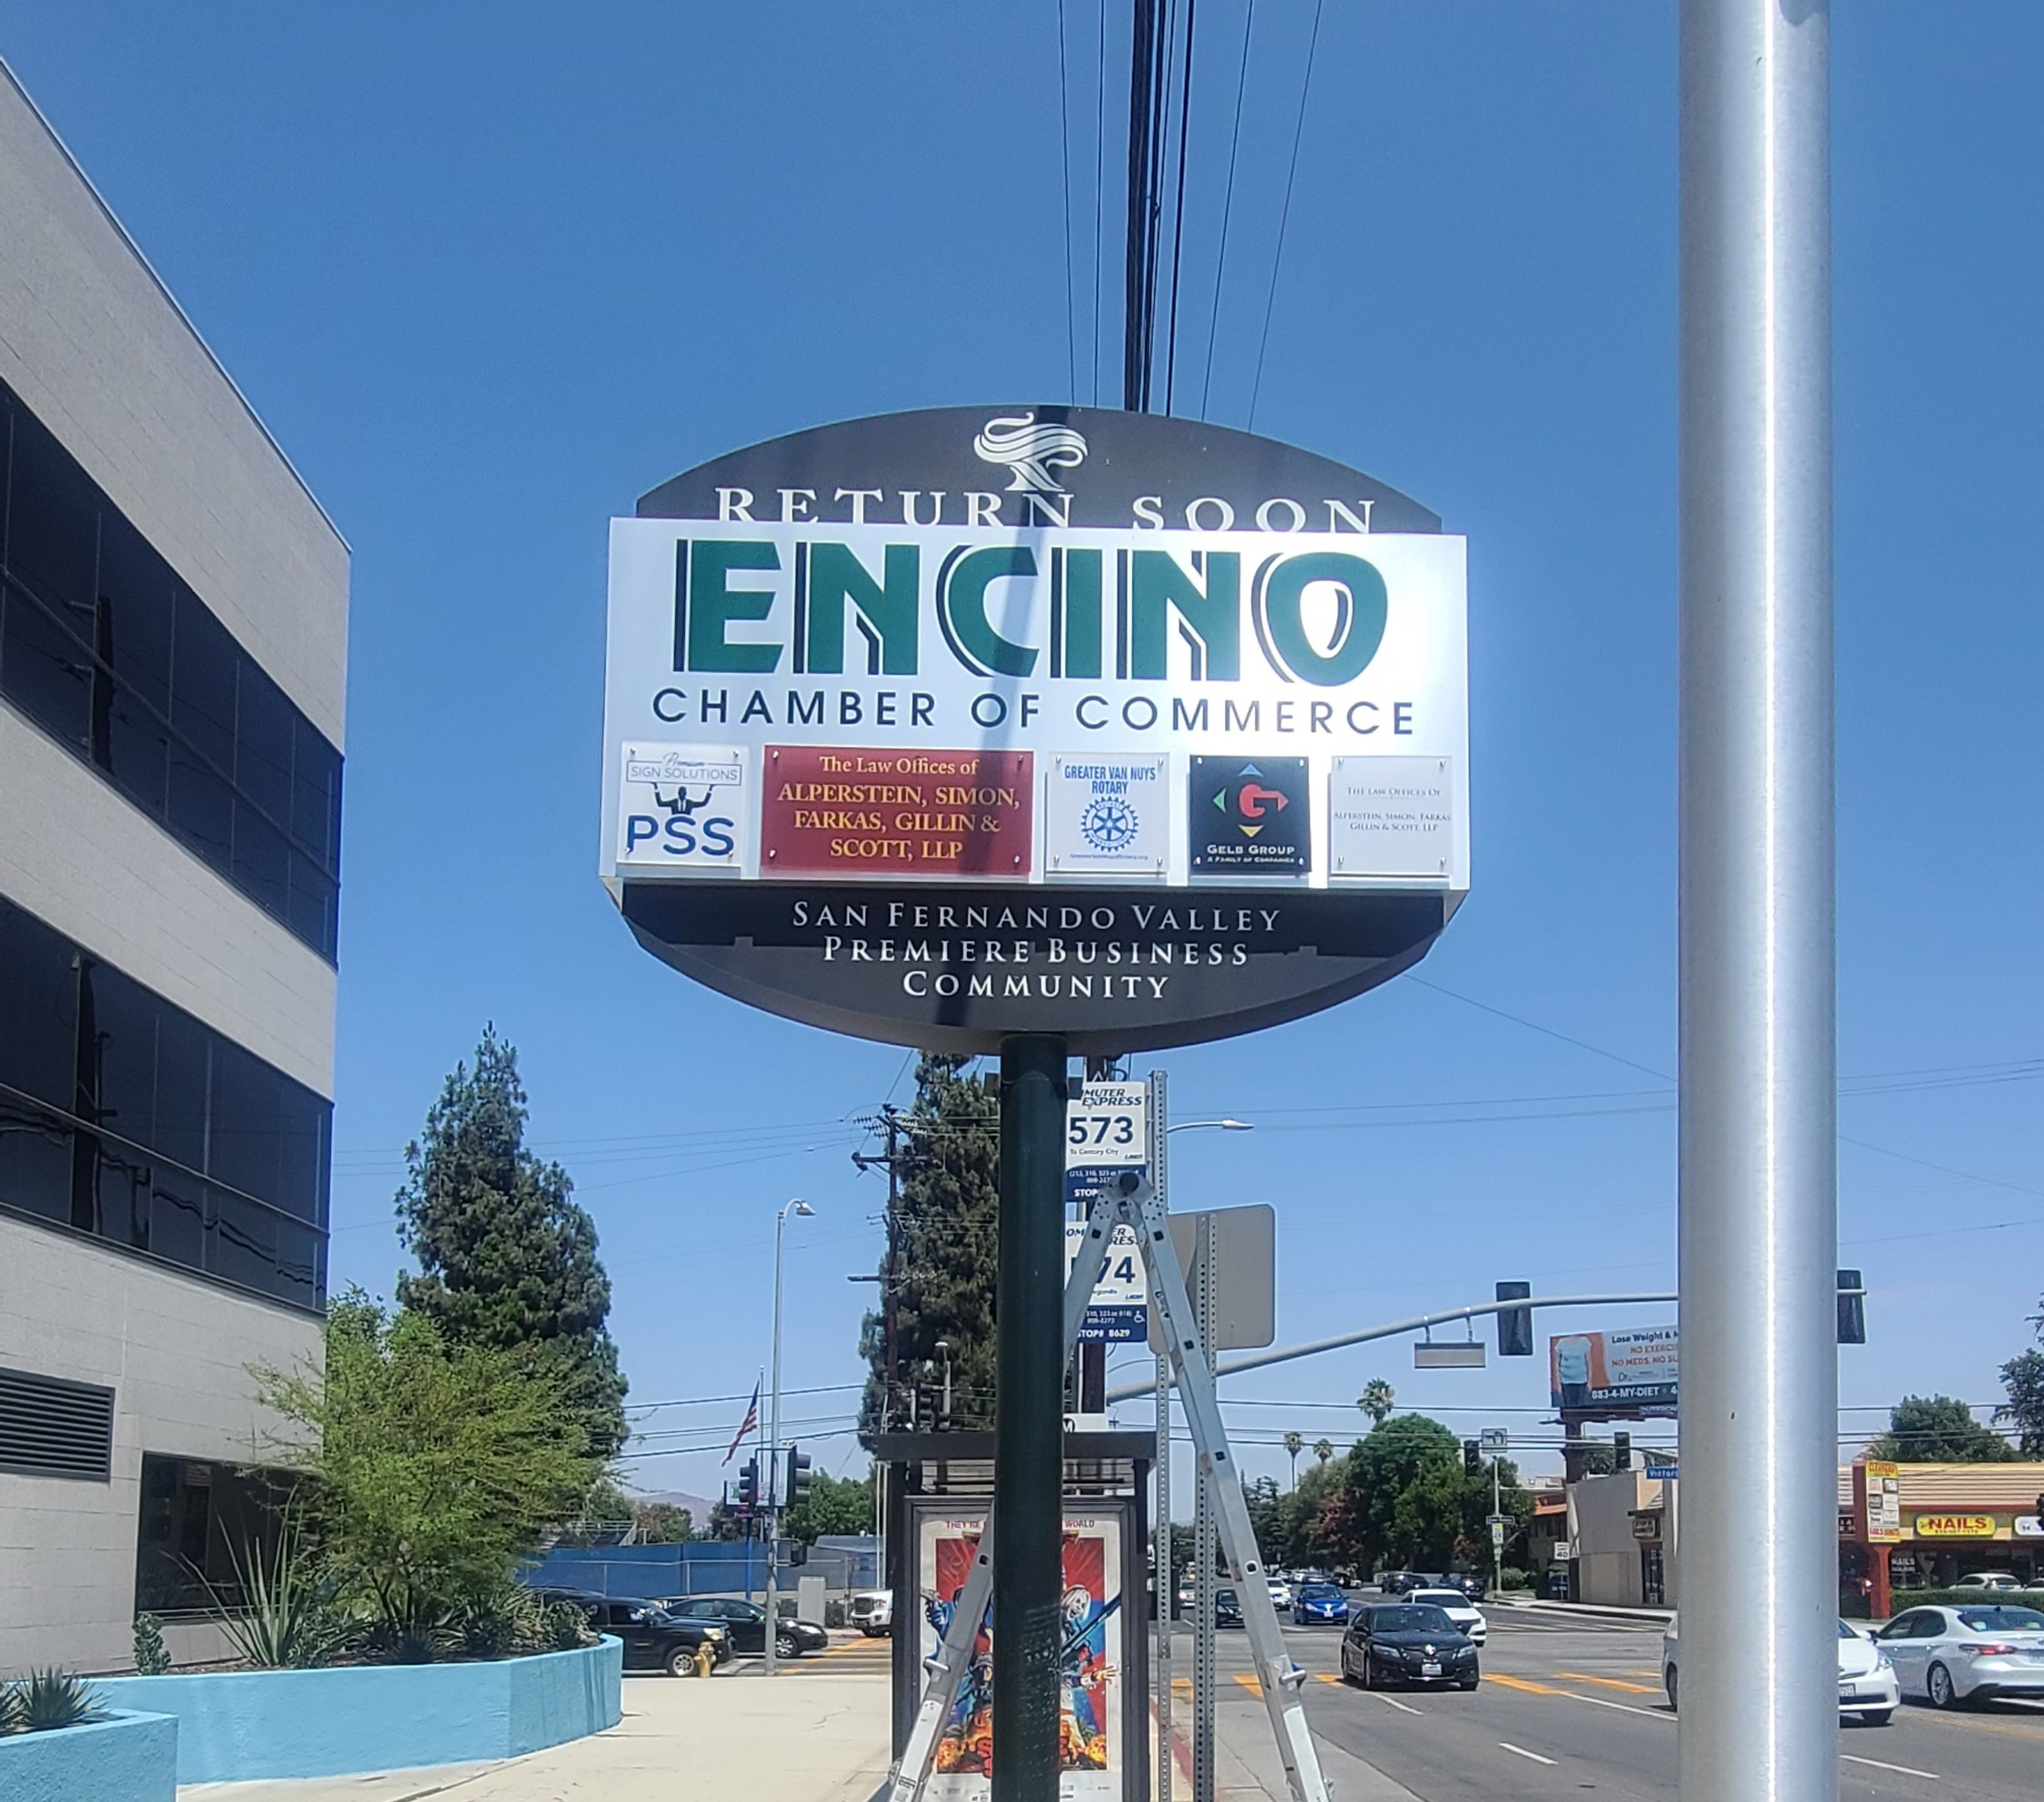 Communities can greet visitors and residents alike with a welcome sign or two, like this acrylic plaque we fabricated and installed for the Encino Chamber of Commerce.